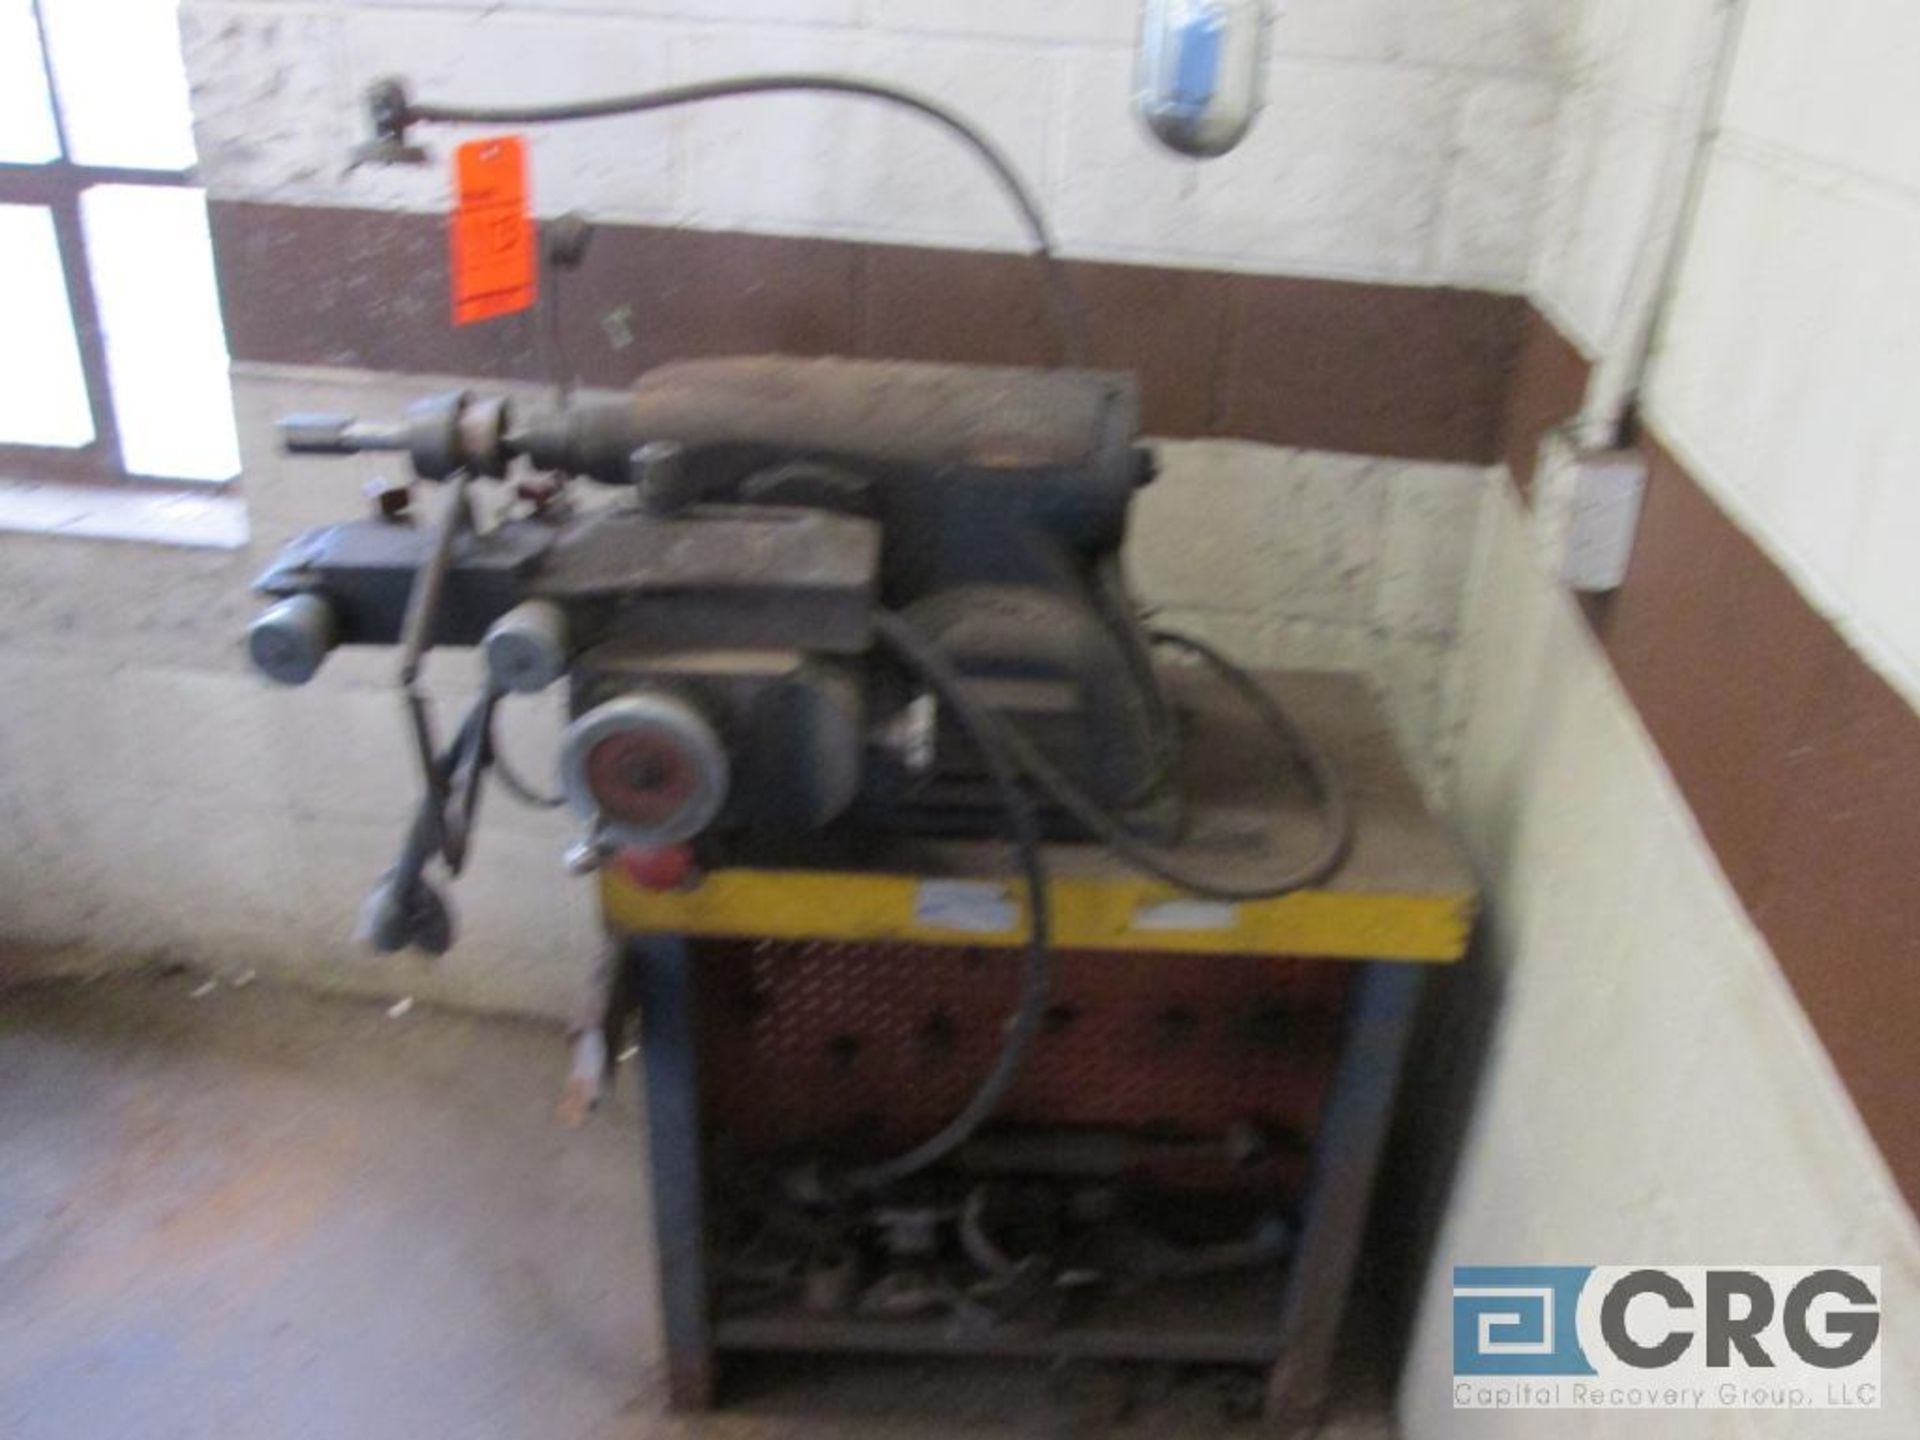 Ammco brake lathe, 1 ph, m/n, s/n not available - Image 2 of 4